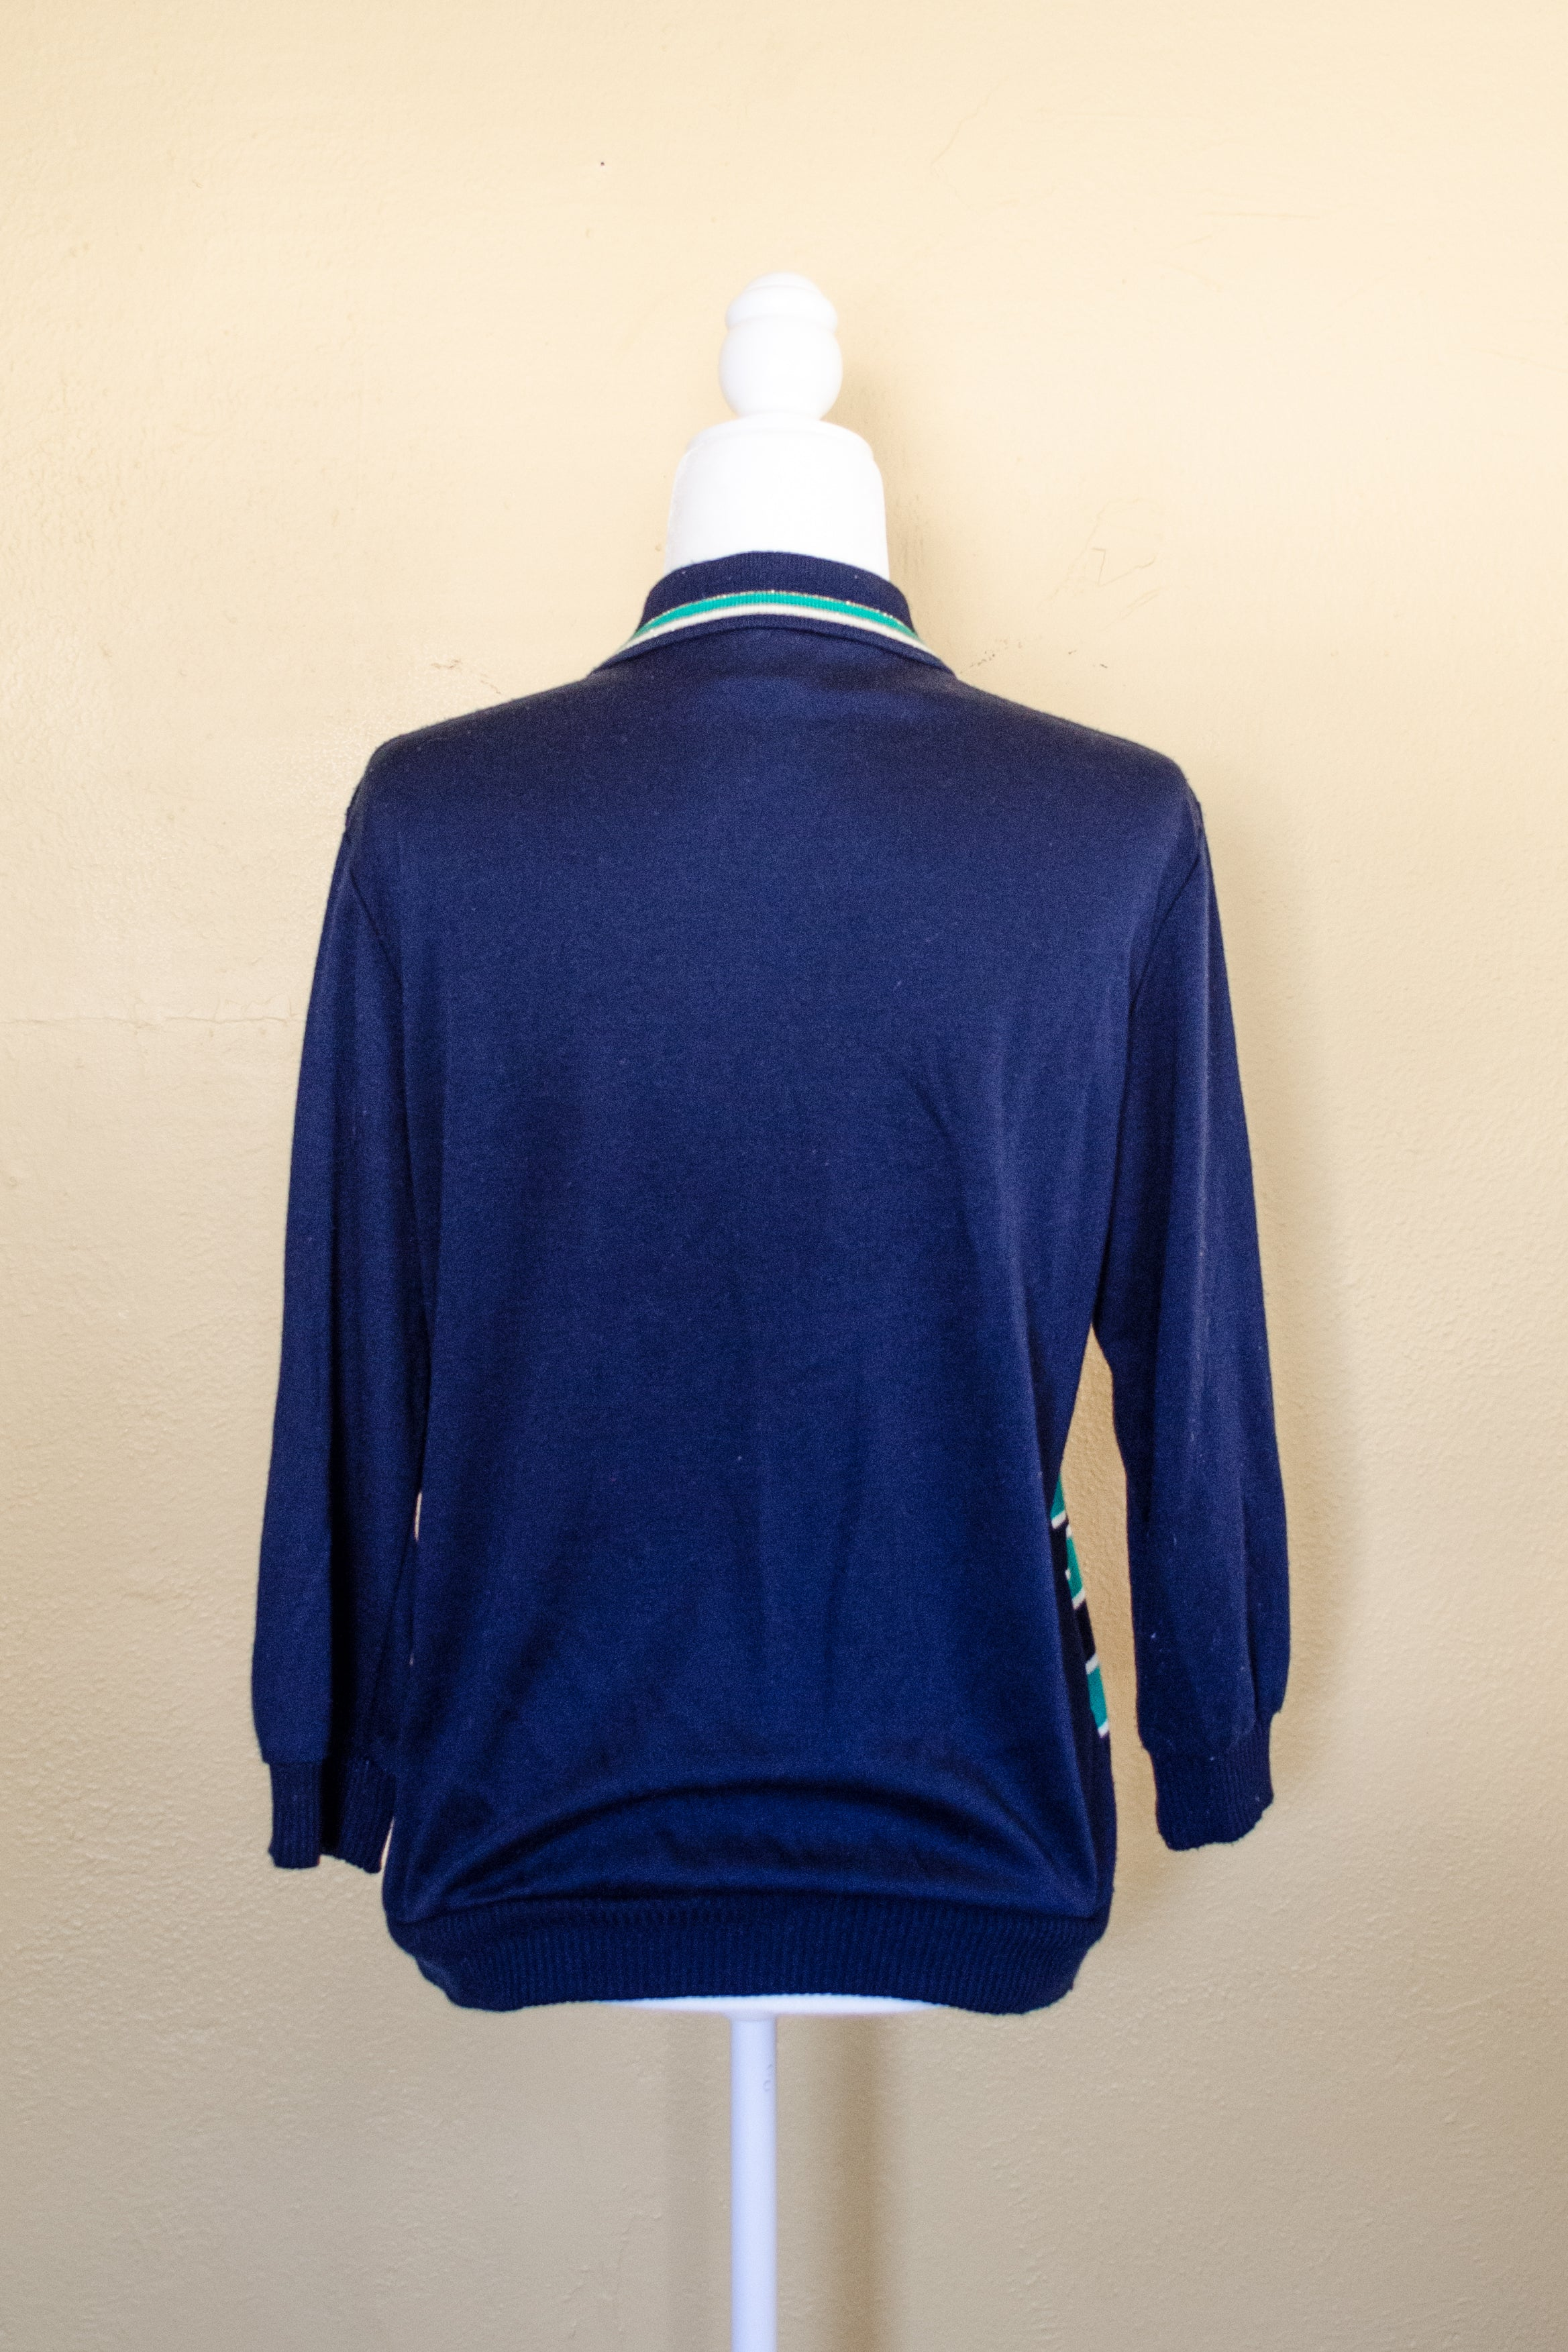 Vintage 80s Green & Blue Striped Sweater / S-M